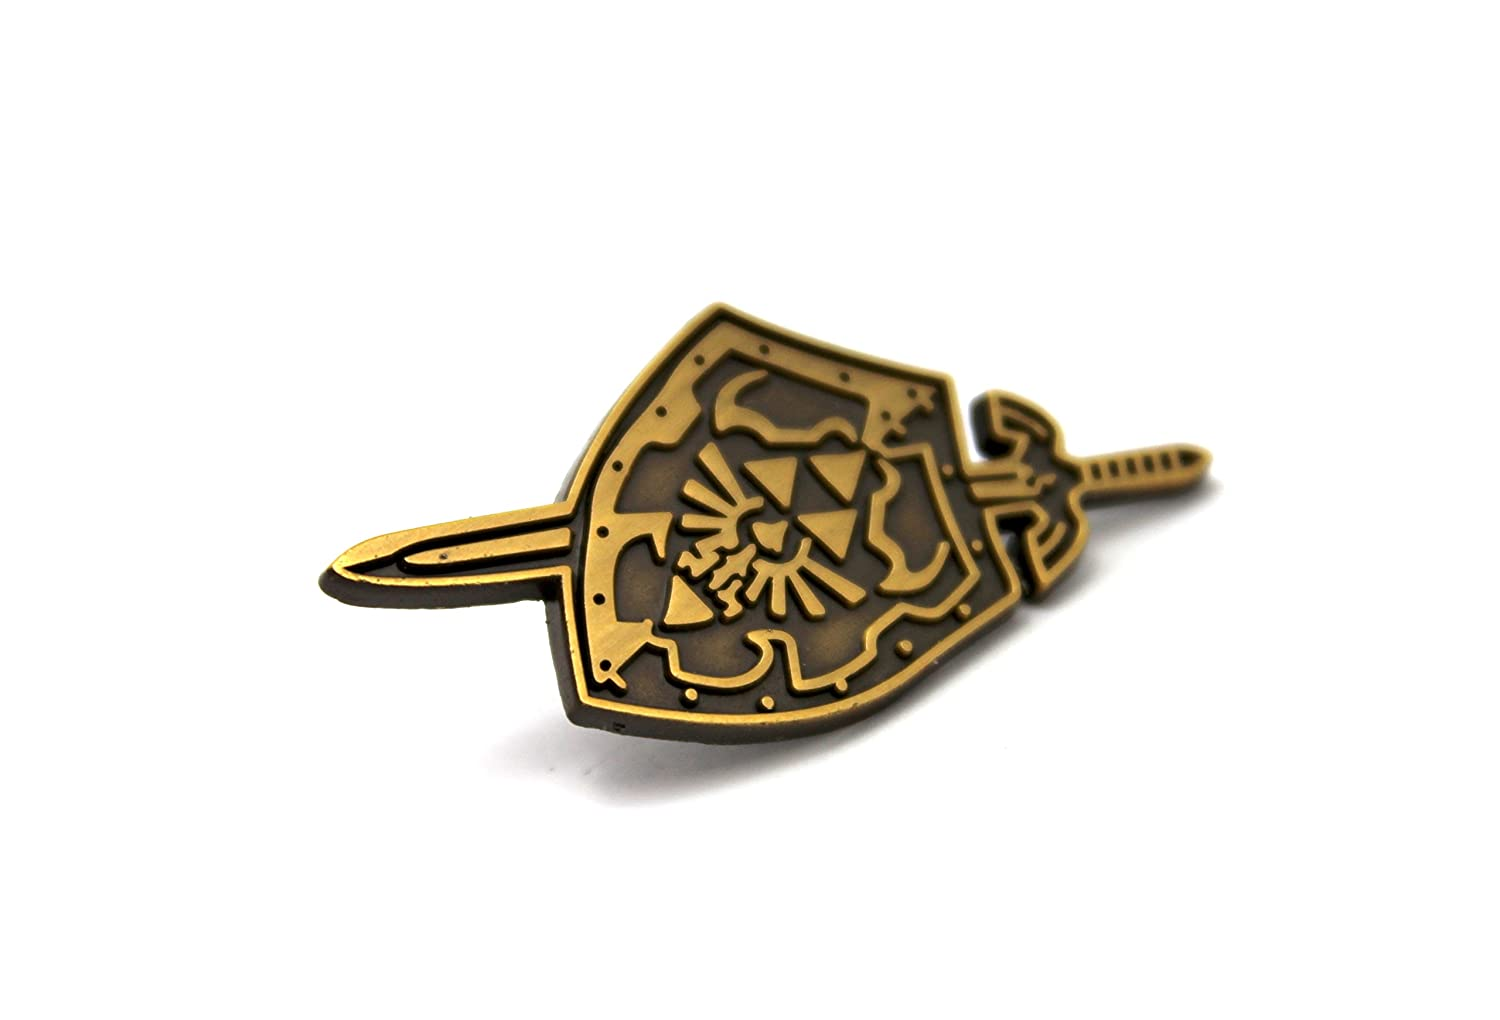 The Link's Shield Pin The Link' s Shield Pin Sloth Steady